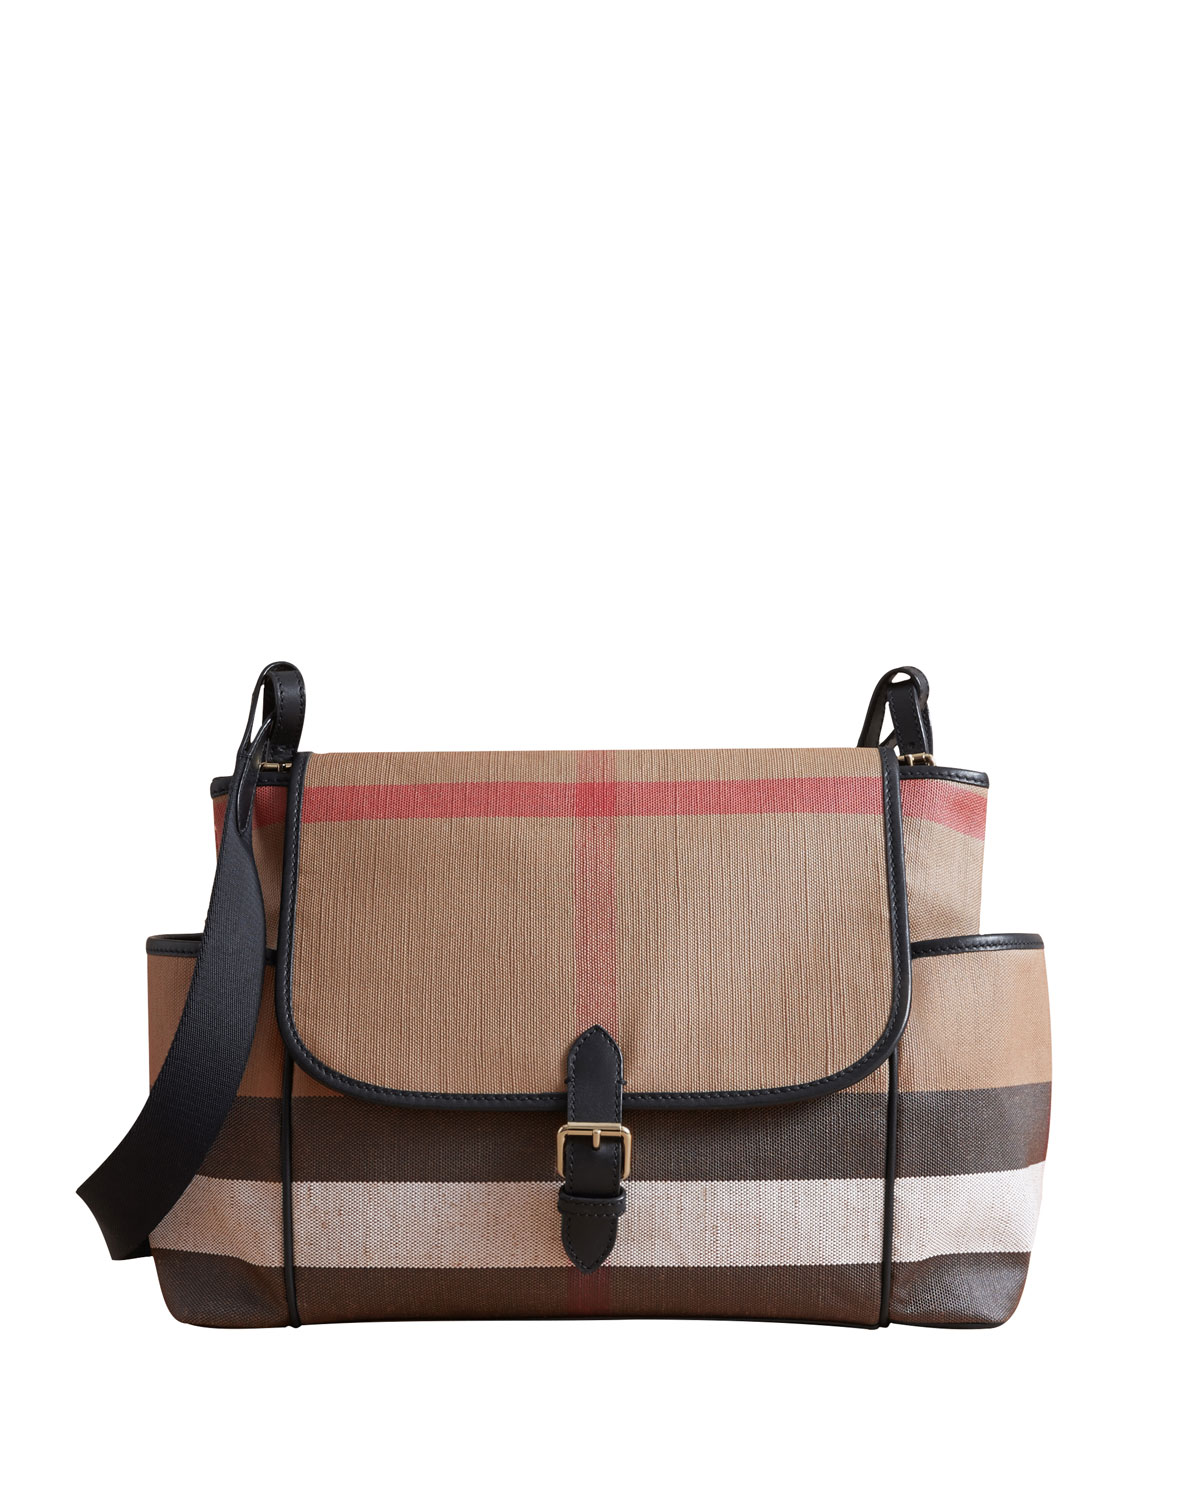 Burberry Flap Top Bag  83c3234d662a7